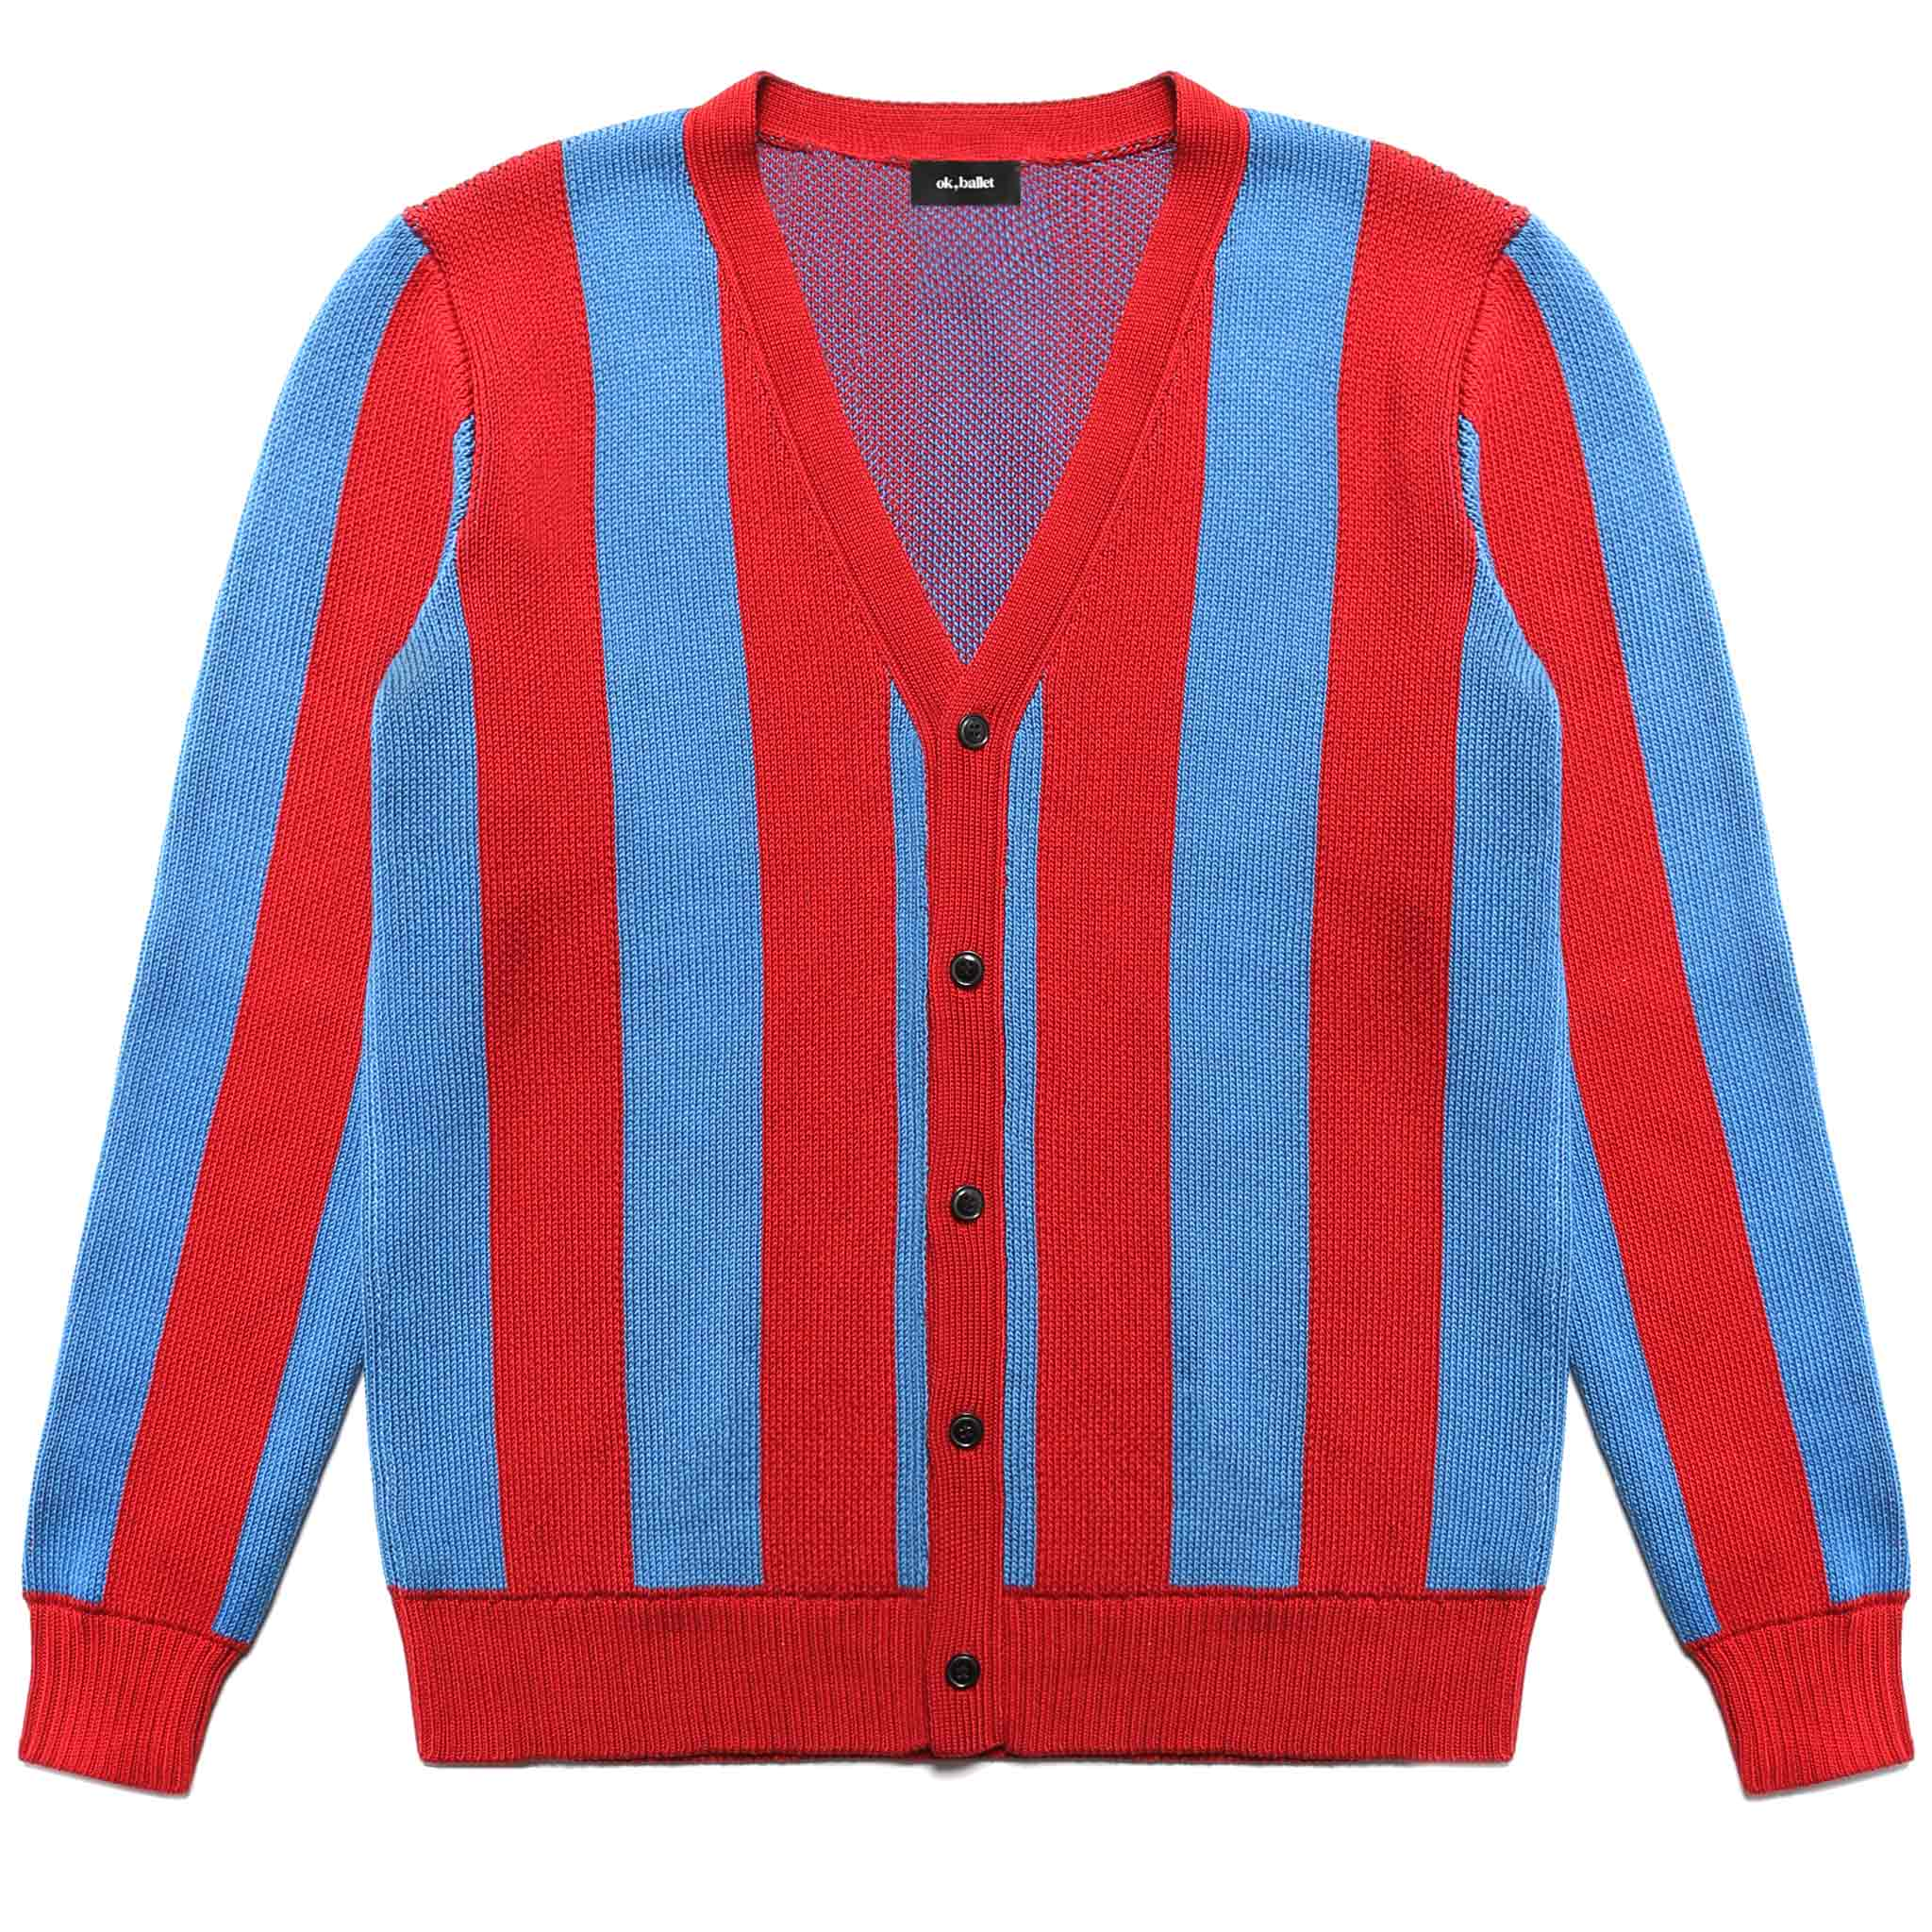 Circus Tent Cardigan Sweater